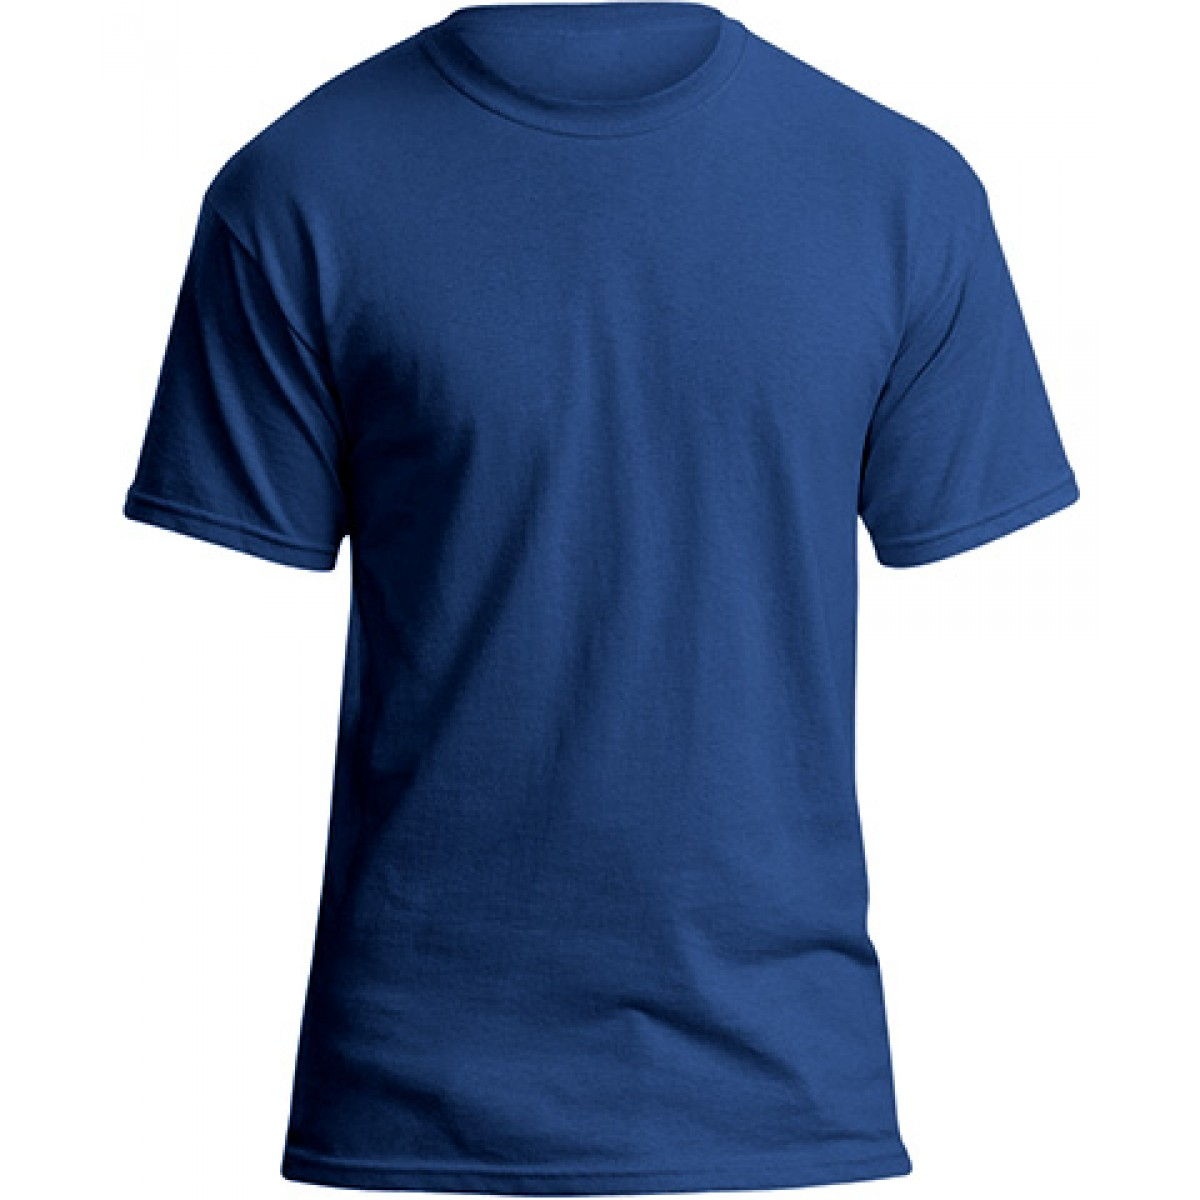 Soft 100% Cotton T-Shirt